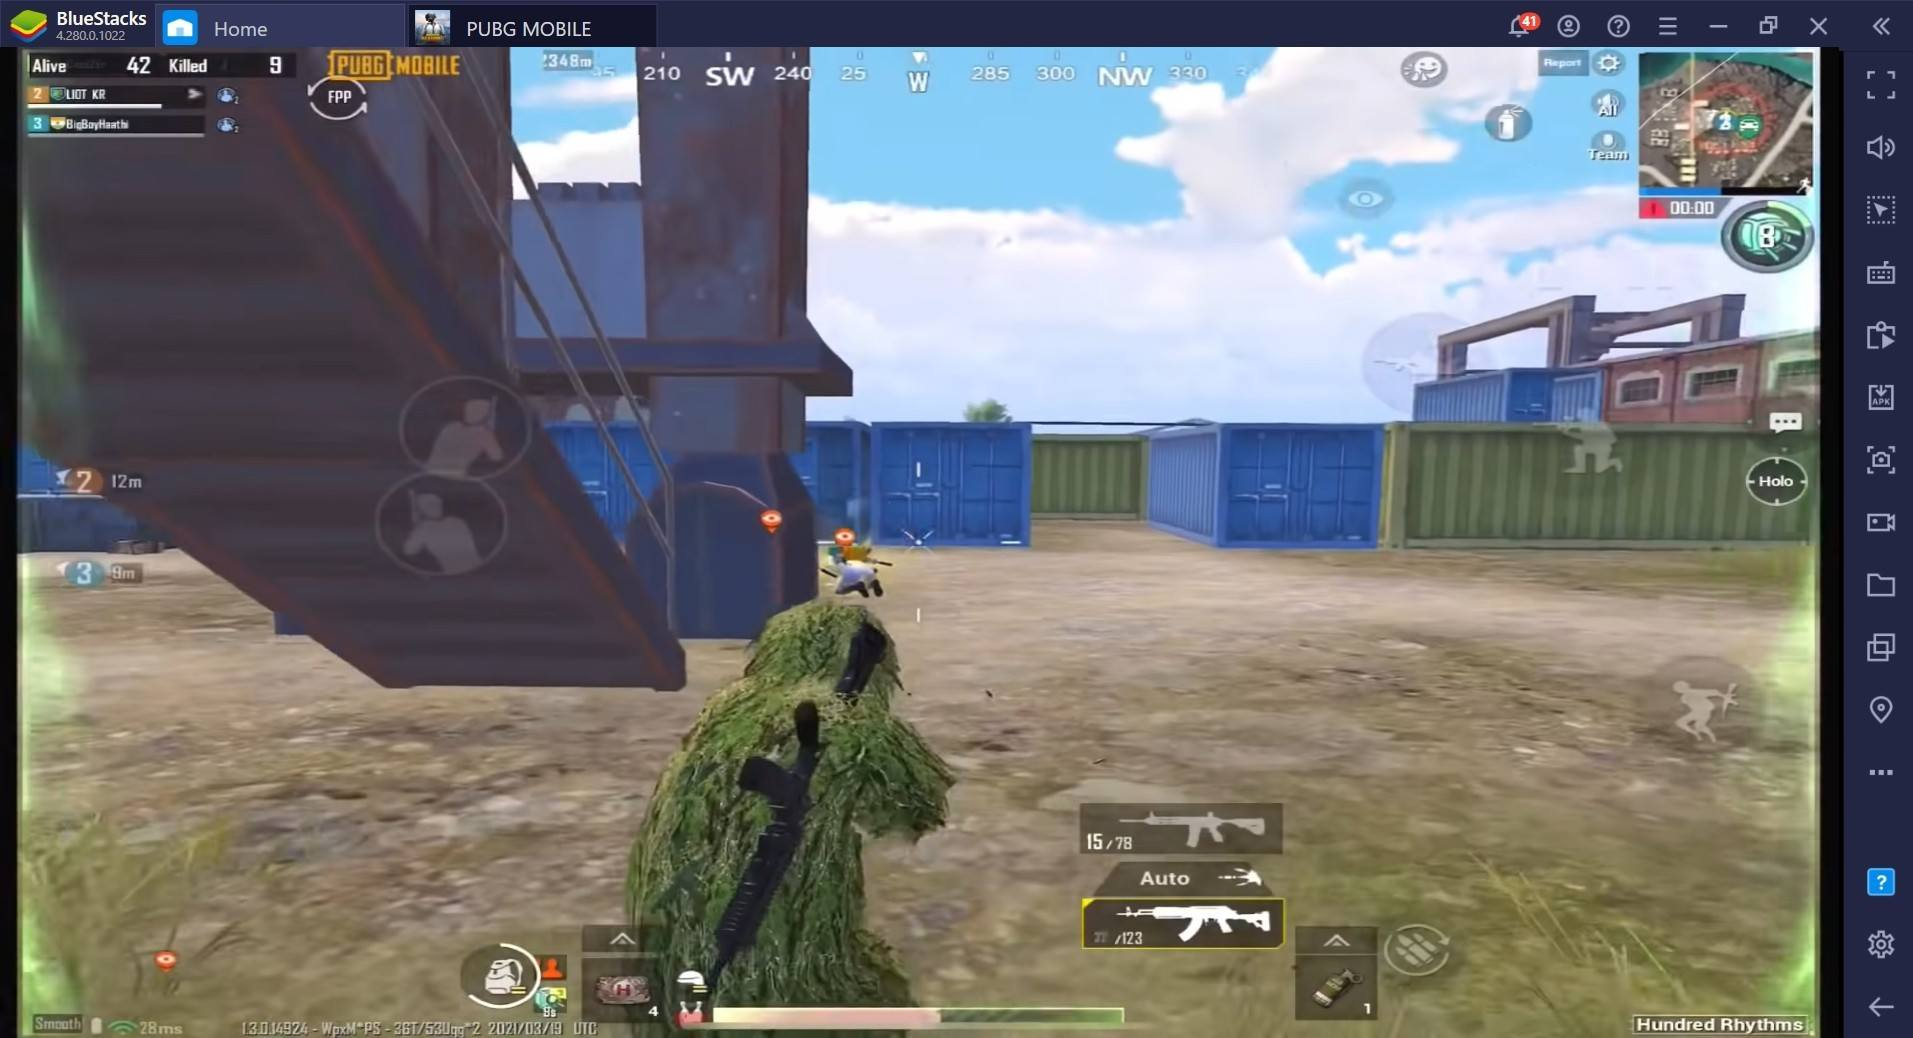 PUBG Mobile Weapon Guide: M249 LMG Compared with Groza